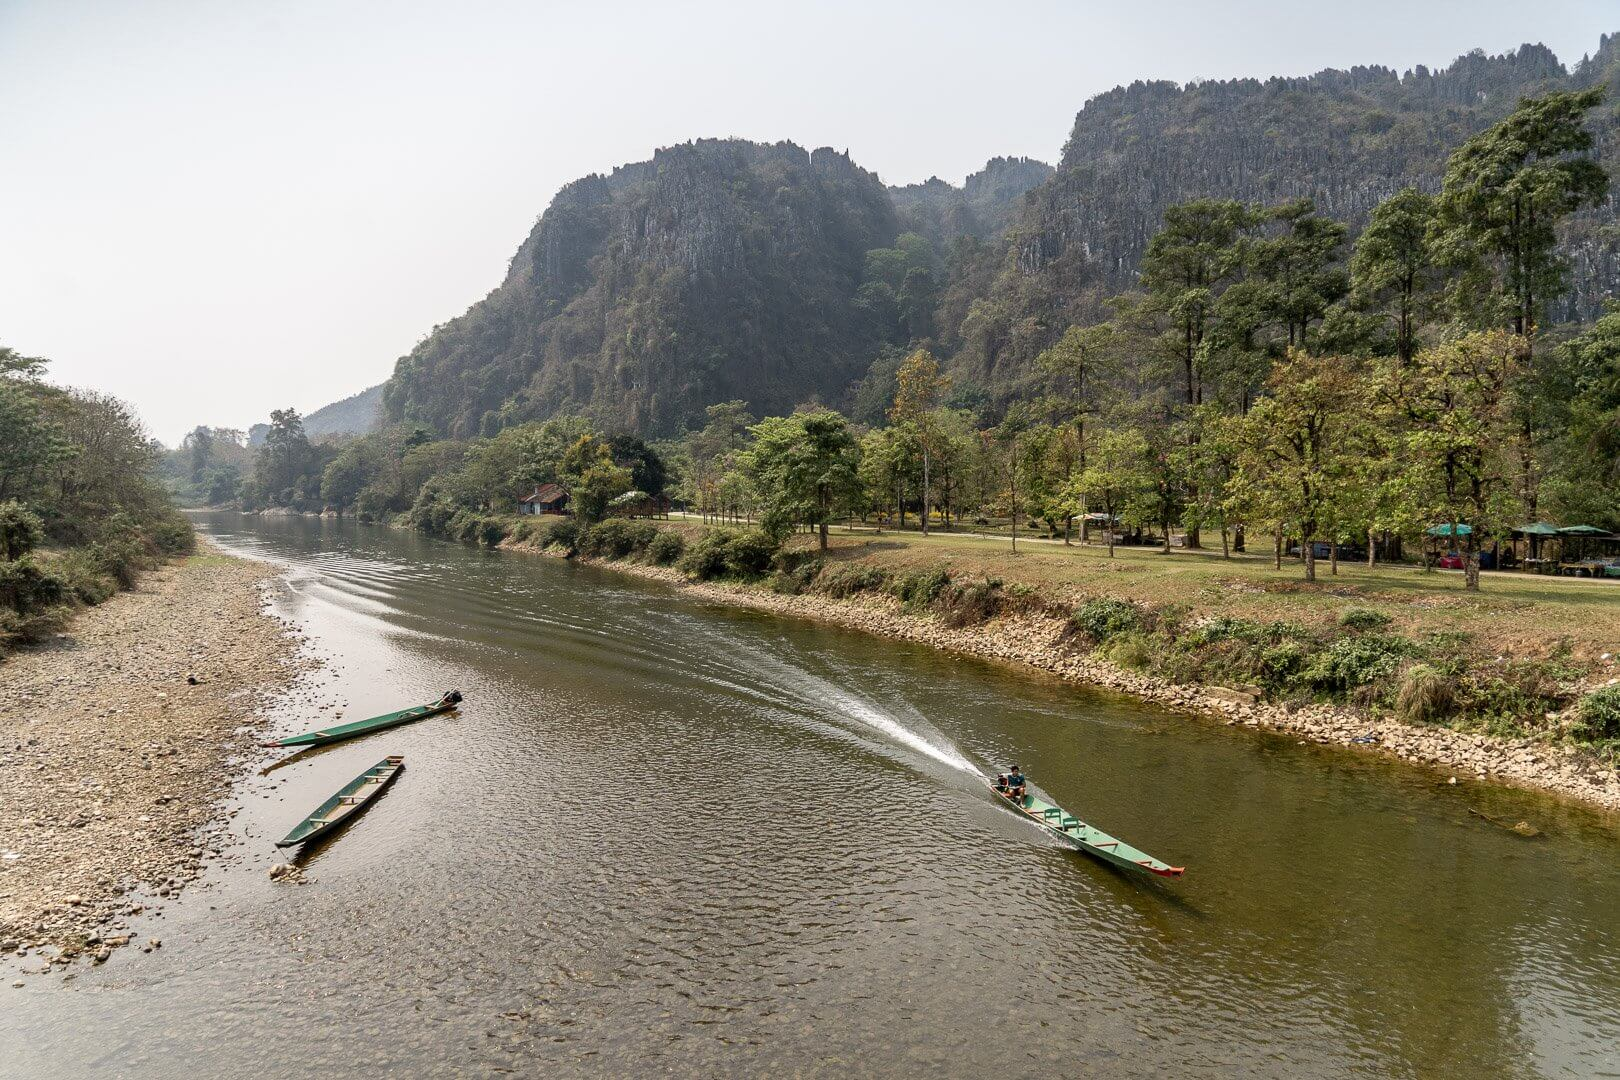 The Nam Song river in Vang Vieng, Laos